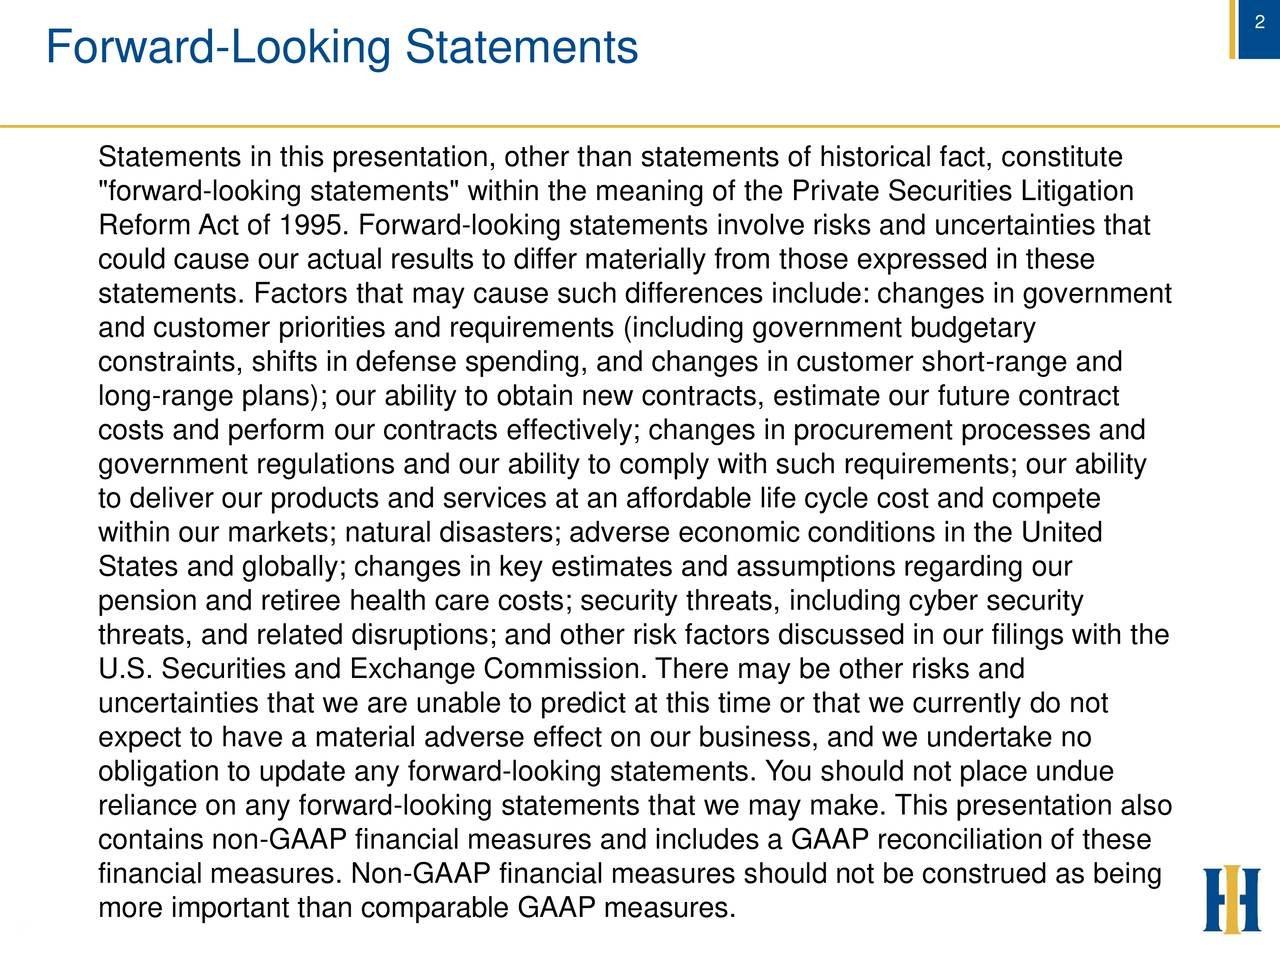 """Forward-Looking Statements Statements in this presentation, other than statements of historical fact, constitute """"forward-looking statements"""" within the meaning of the Private Securities Litigation Reform Act of 1995. Forward-looking statements involve risks and uncertainties that could cause our actual results to differ materially from those expressed in these statements. Factors that may cause such differences include: changes in government and customer priorities and requirements (including government budgetary constraints, shifts in defense spending, and changes in customer short-range and long-range plans); our ability to obtain new contracts, estimate our future contract costs and perform our contracts effectively; changes in procurement processes and government regulations and our ability to comply with such requirements; our ability to deliver our products and services at an affordable life cycle cost and compete within our markets; natural disasters; adverse economic conditions in the United States and globally; changes in key estimates and assumptions regarding our pension and retiree health care costs; security threats, including cyber security threats, and related disruptions; and other risk factors discussed in our filings with the U.S. Securities and Exchange Commission. There may be other risks and uncertainties that we are unable to predict at this time or that we currently do not expect to have a material adverse effect on our business, and we undertake no obligation to update any forward-looking statements. You should not place undue reliance on any forward-looking statements that we may make. This presentation also contains non-GAAP financial measures and includes a GAAP reconciliation of these financial measures. Non-GAAP financial measures should not be construed as being more important than comparable GAAP measures. 2"""